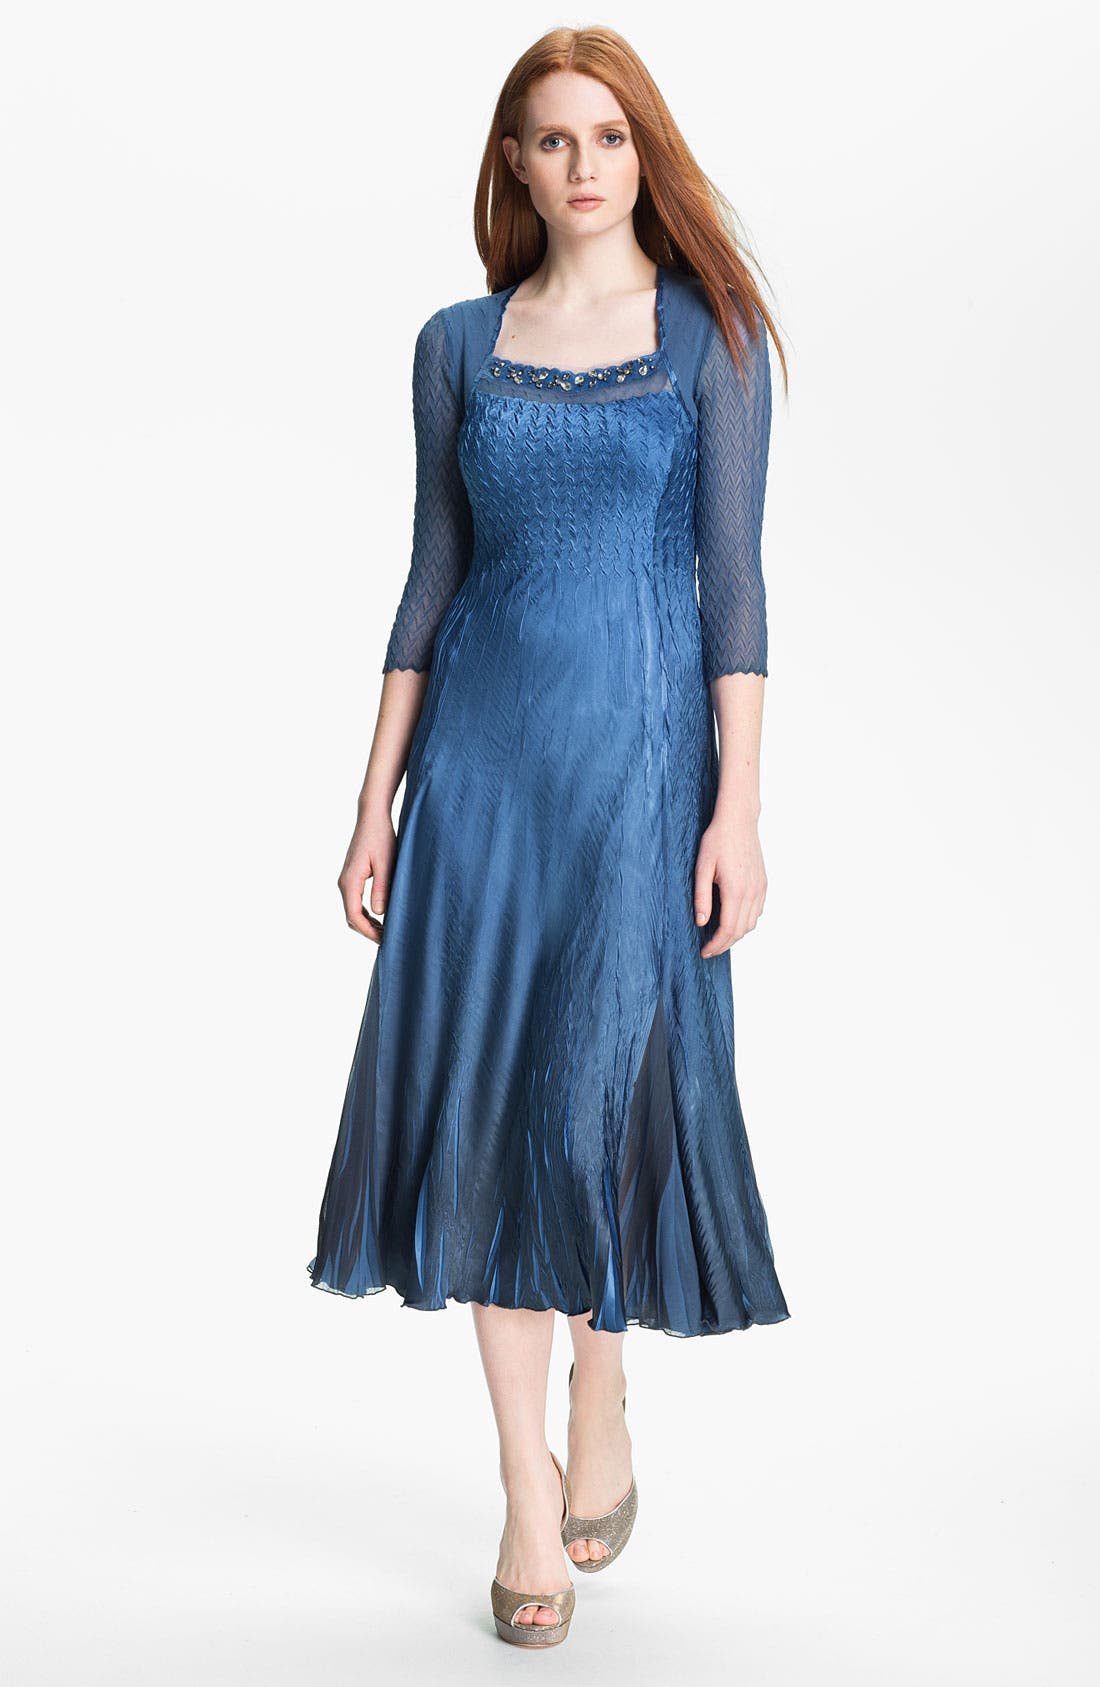 Main Image - Komarov Embellished Square Neck Textured Charmeuse Dress